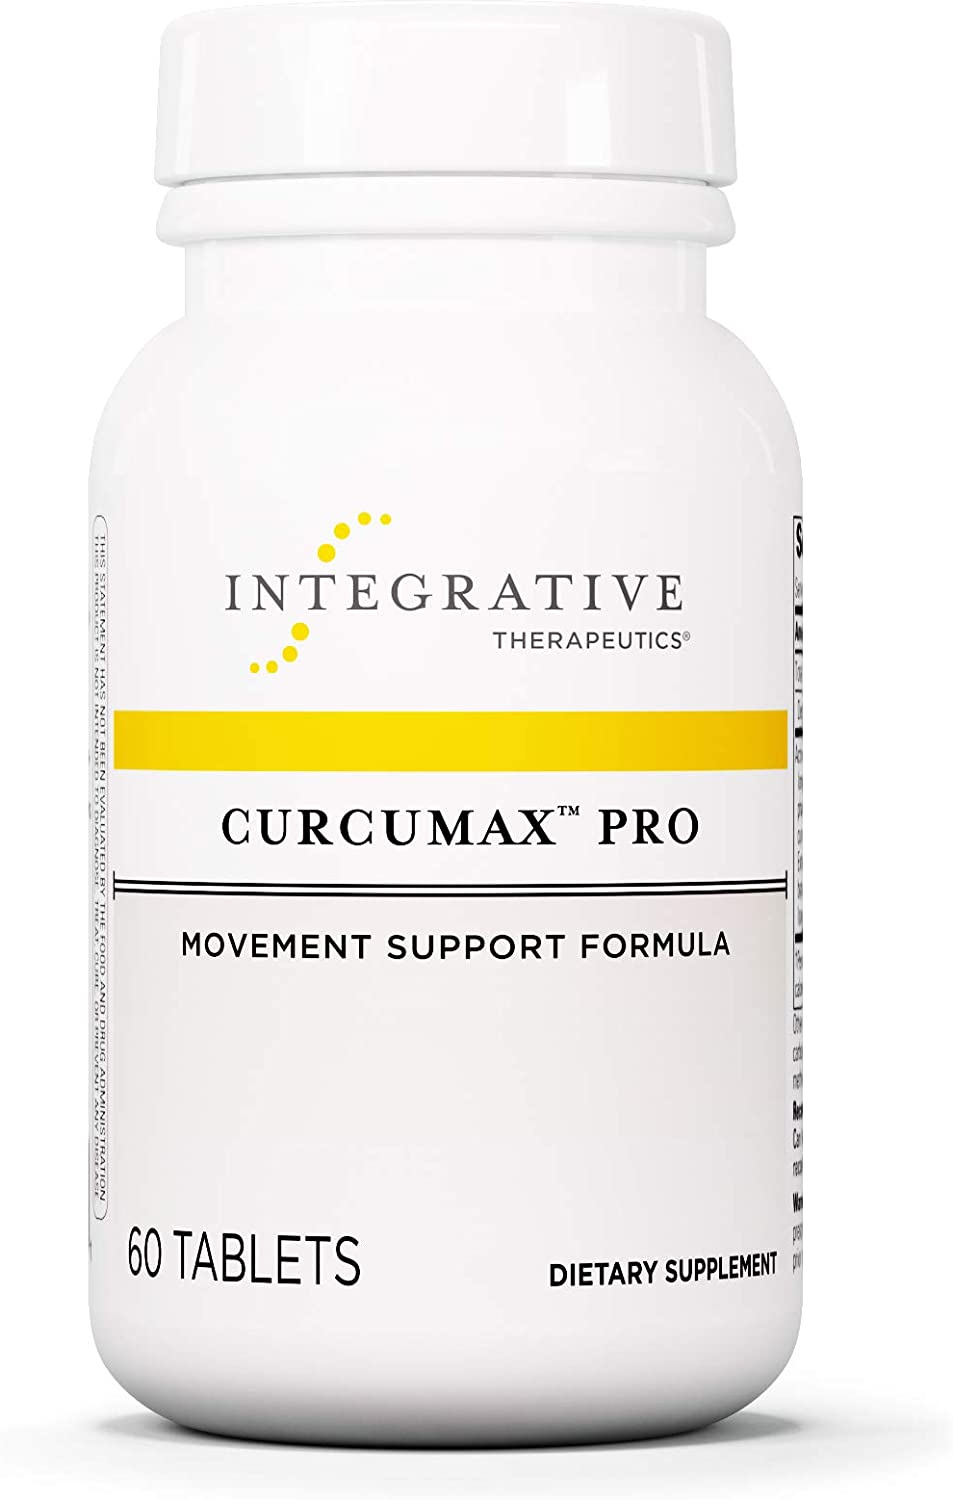 Integrative Therapeutics – Curcumax Pro – Movement Support Formula – 60 Tablets